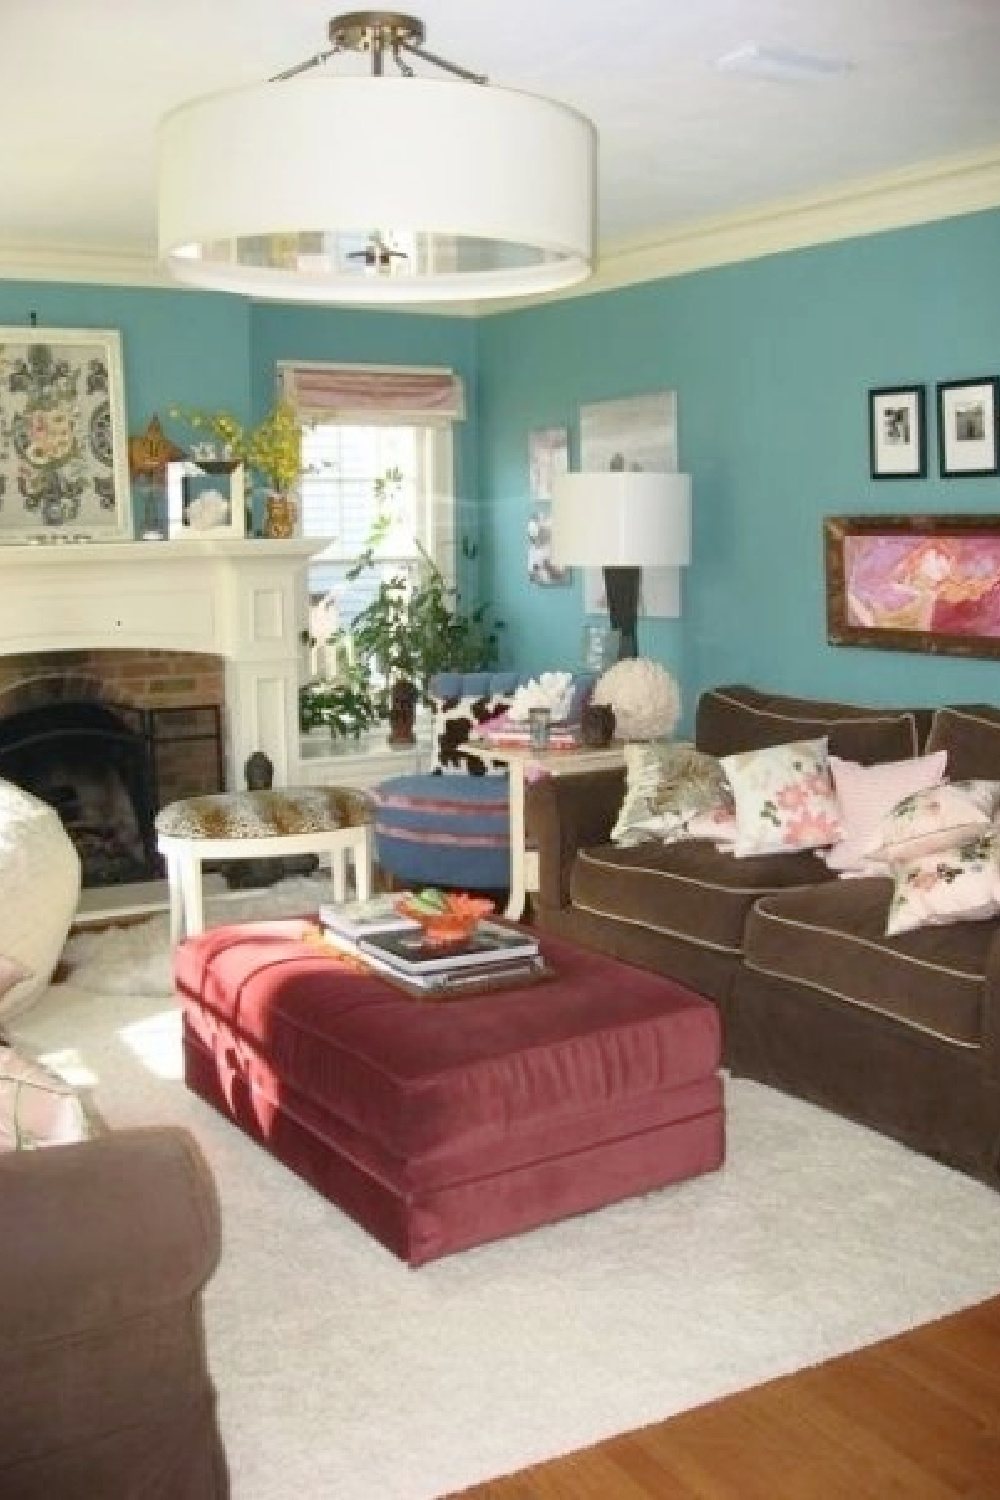 Turquoise walls and flea market beachy boho style in Jenny Sweeney's living room in a suburban Tudor home.